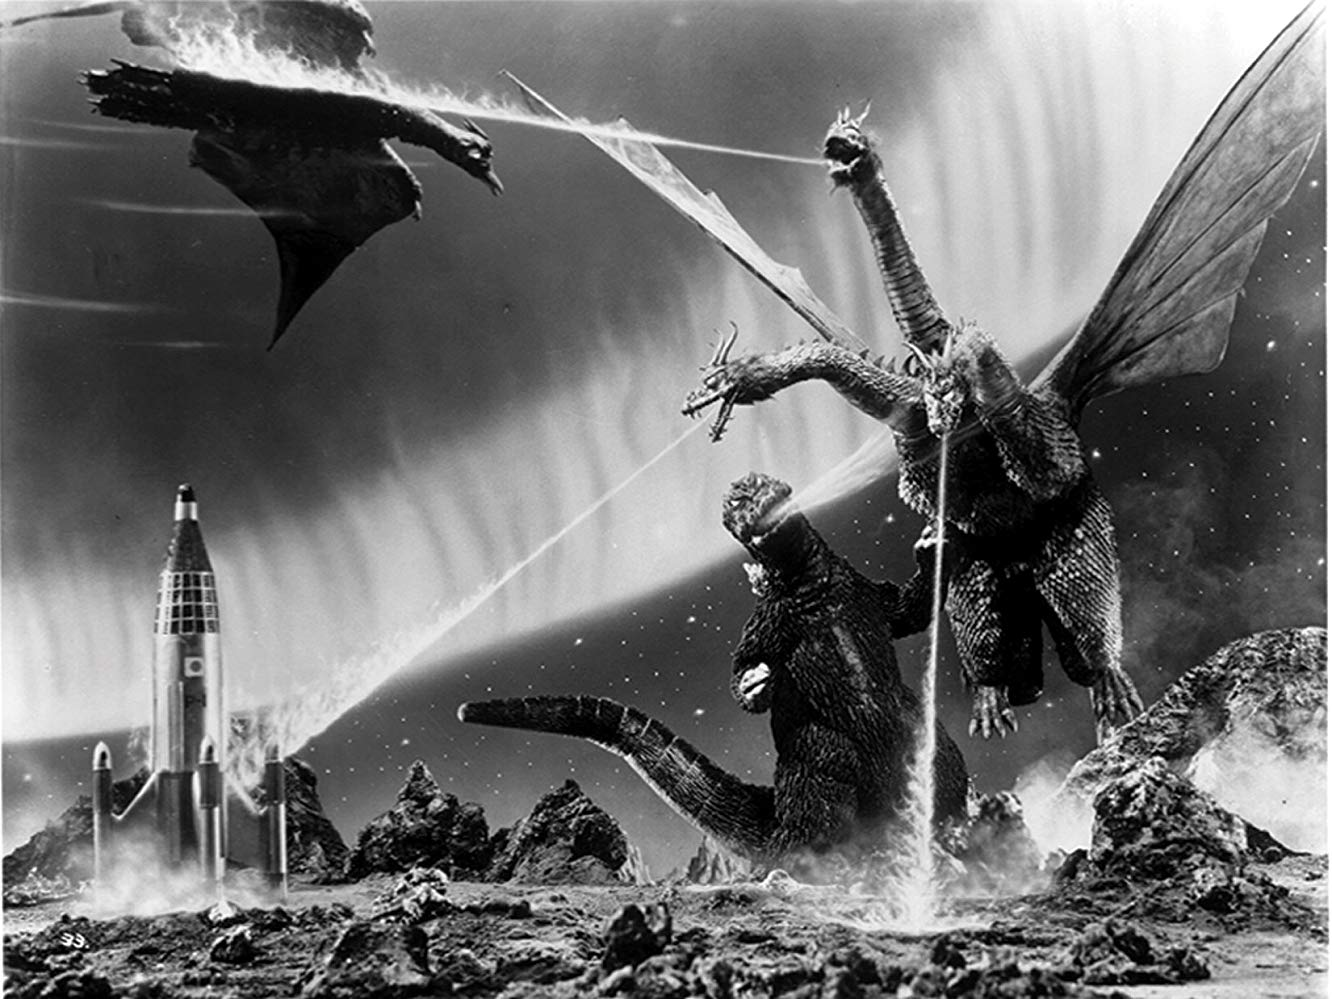 Rodan and Godzilla battle Ghidrah on Planet X in Monster Zero (1965)